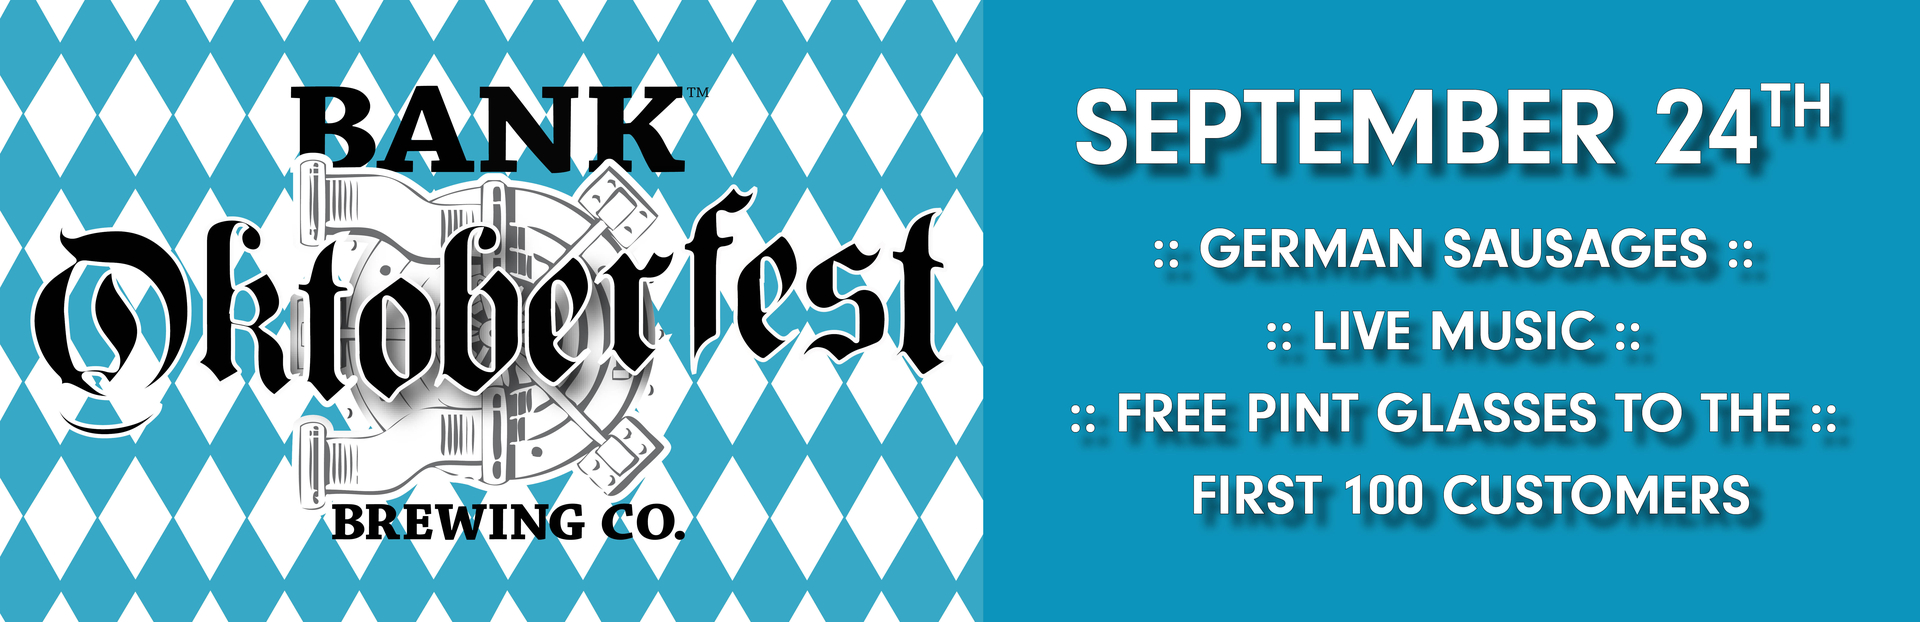 Bank Brewing OKtoberfest